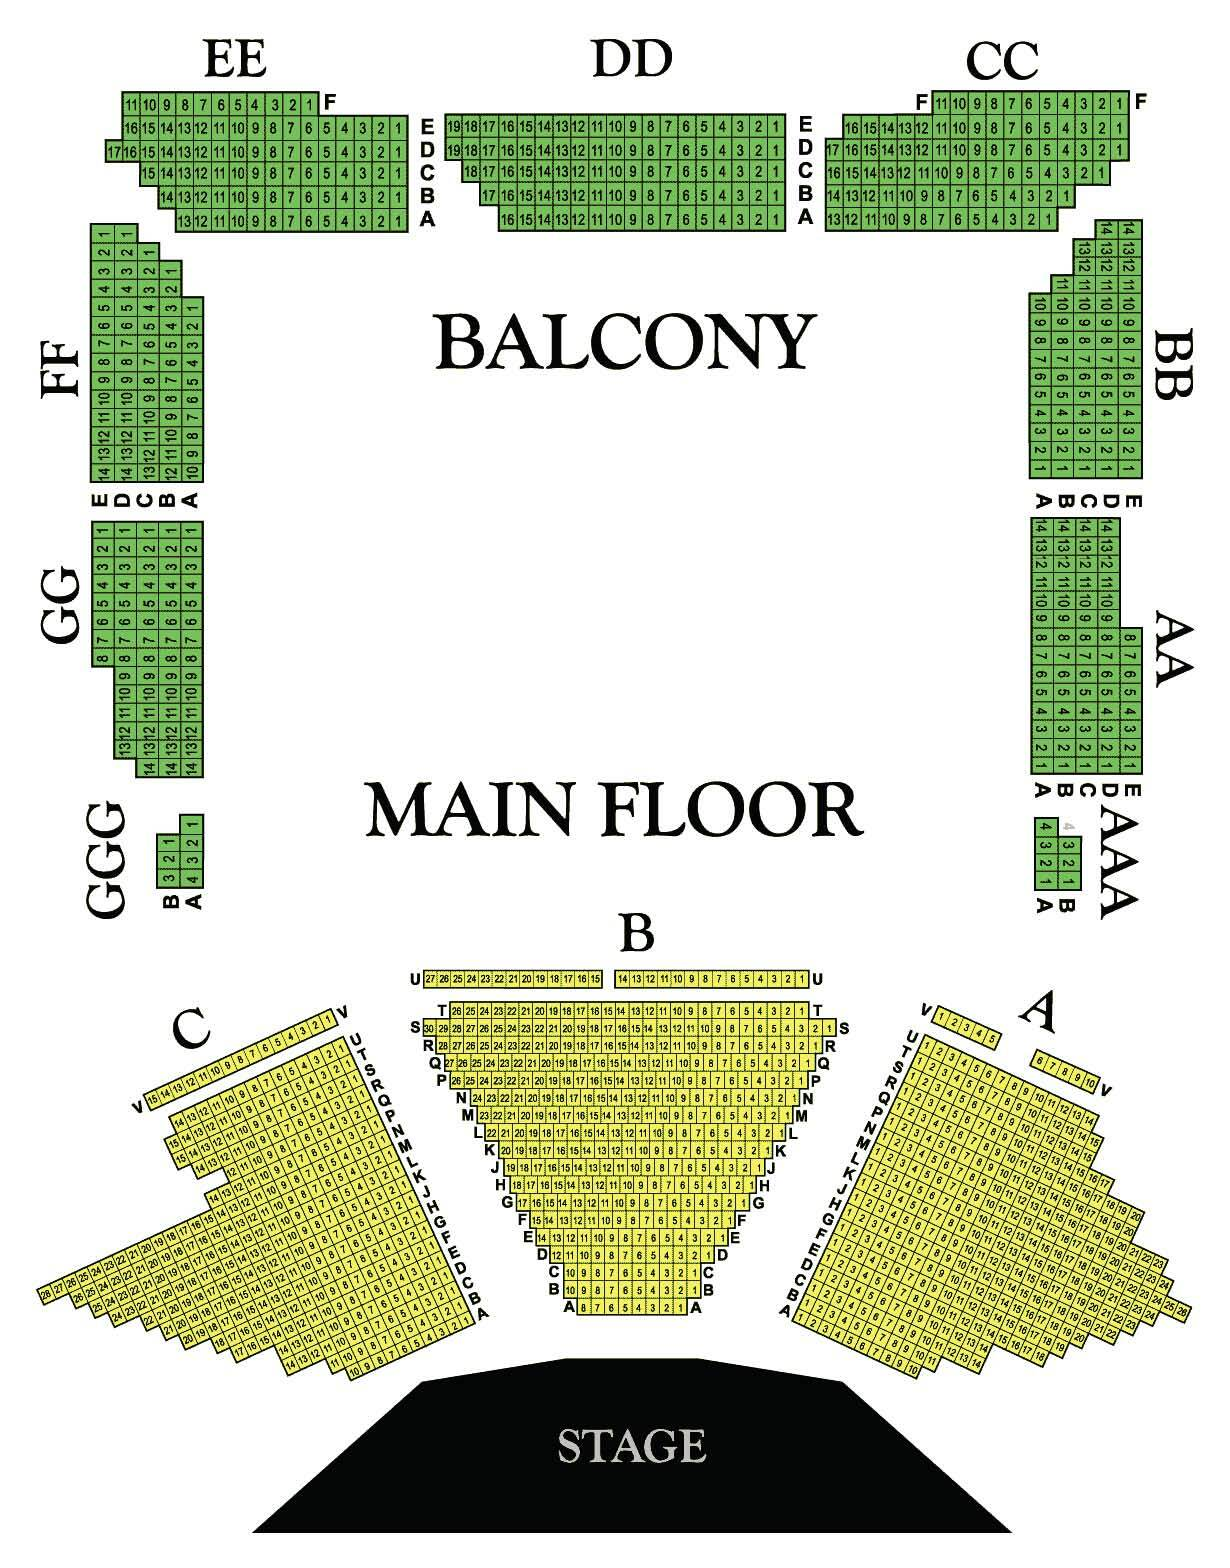 Wells Fargo Center for the Arts Seating Chart